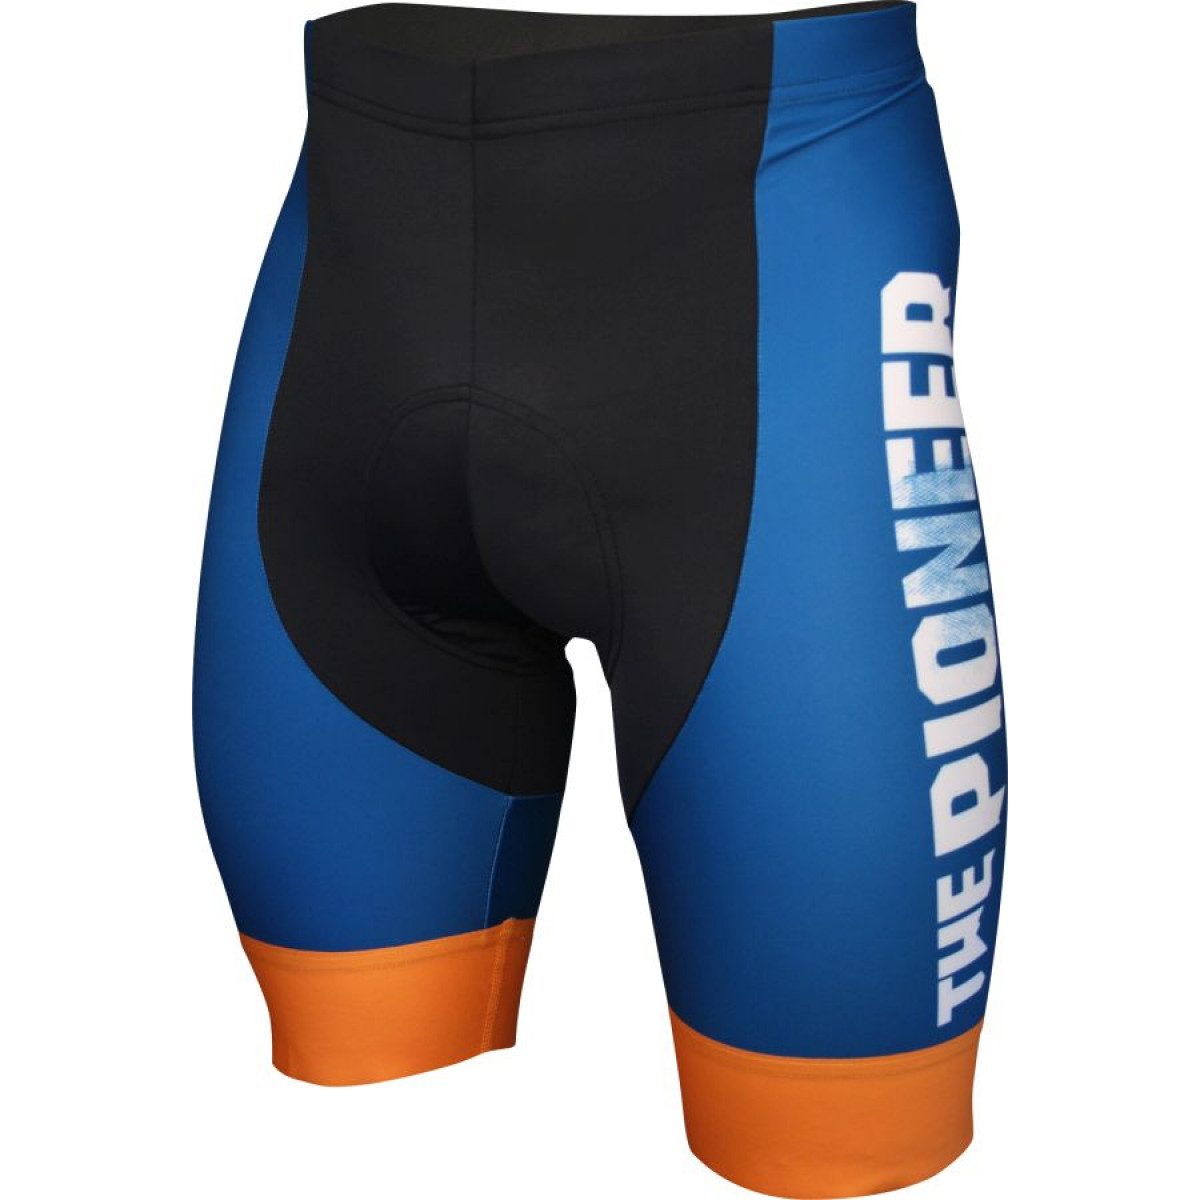 Pioneer s HB WFB LB6 merch 1 Race Elite Shorts